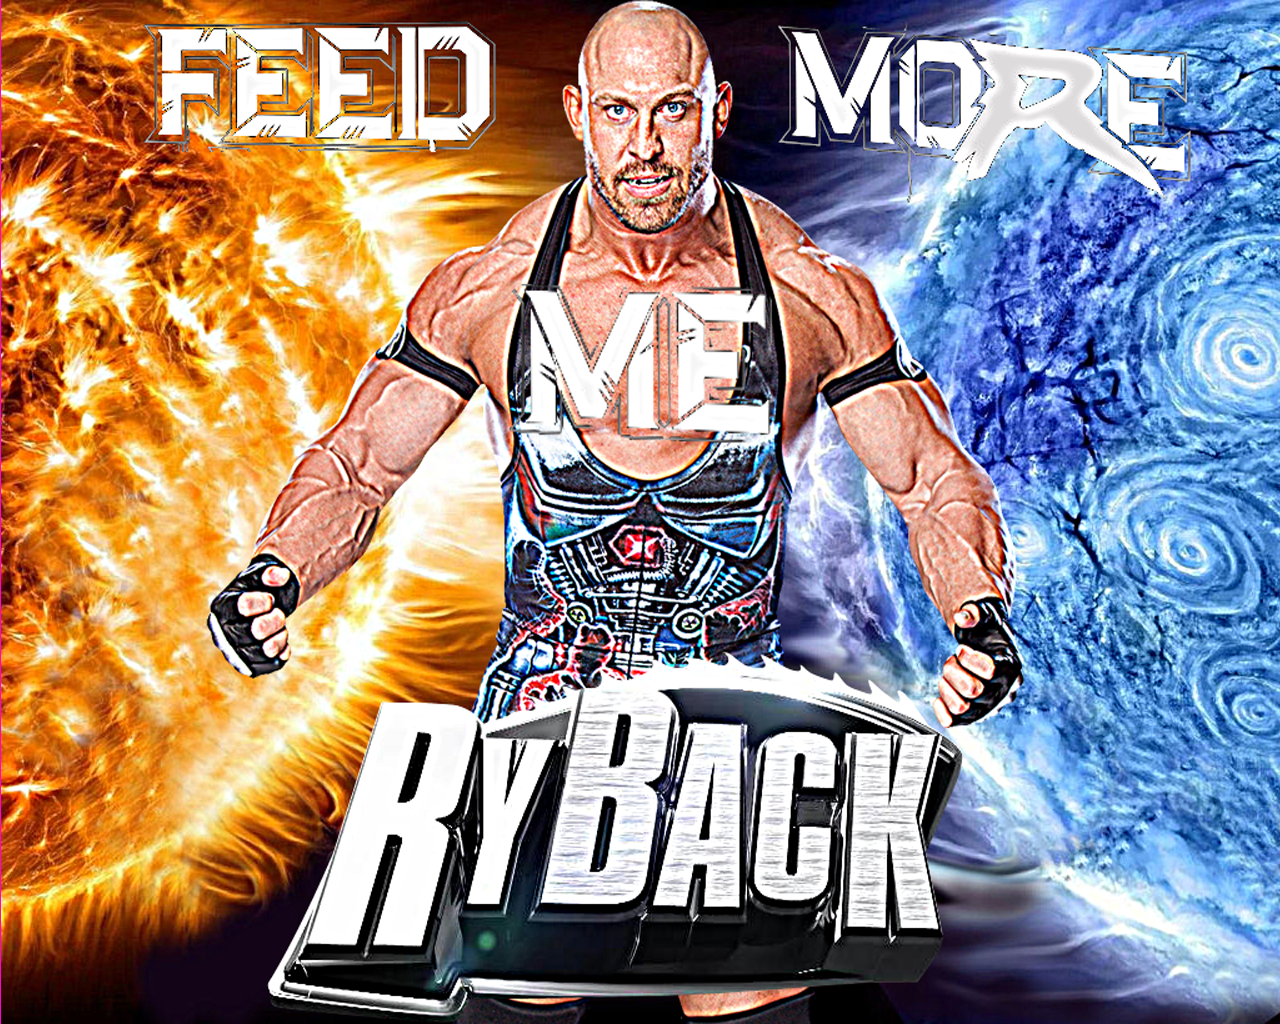 Creation Studio WWE Ryback Feed Me More Wallpaper 1280x1024